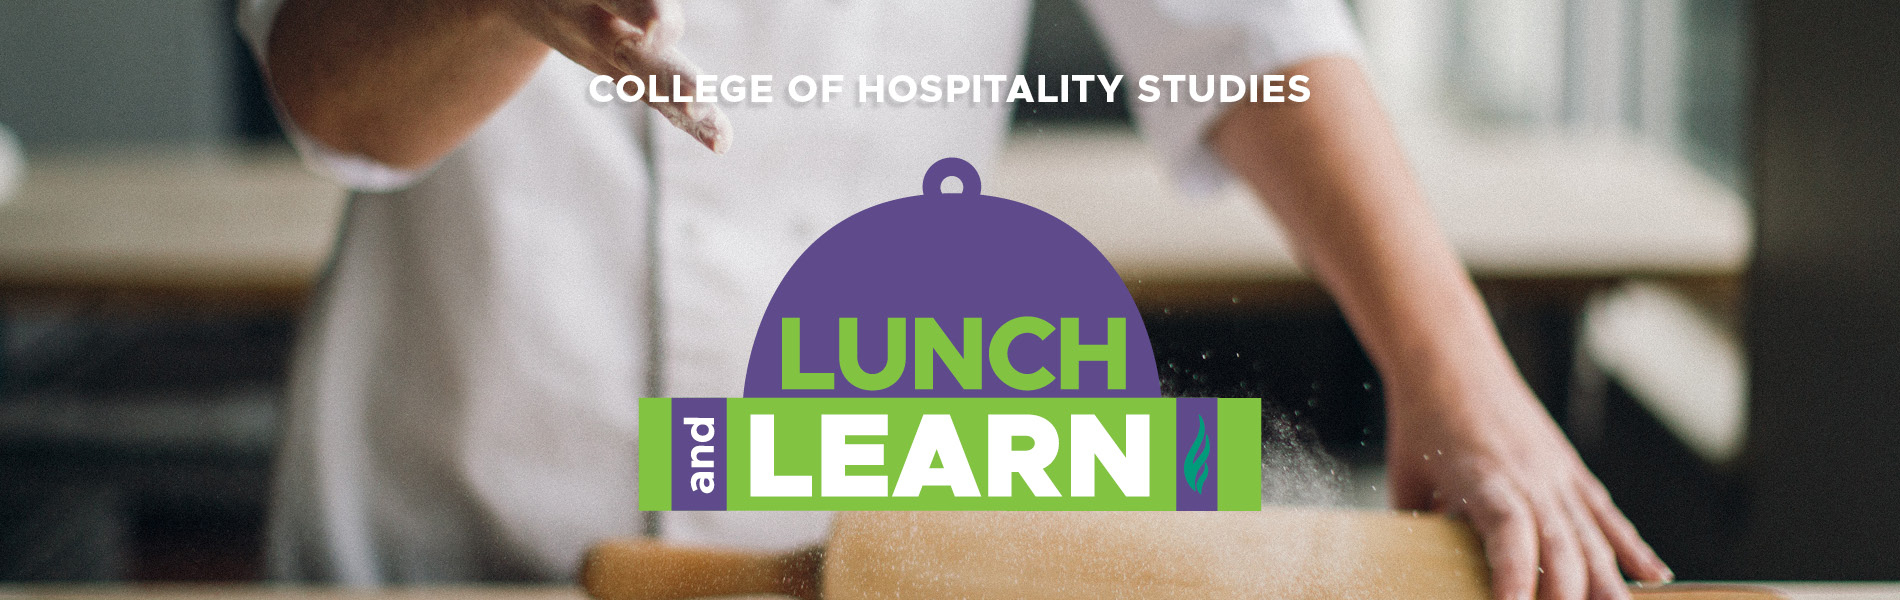 Sullivan University College of Hospitality Studies Lunch and Learn Image